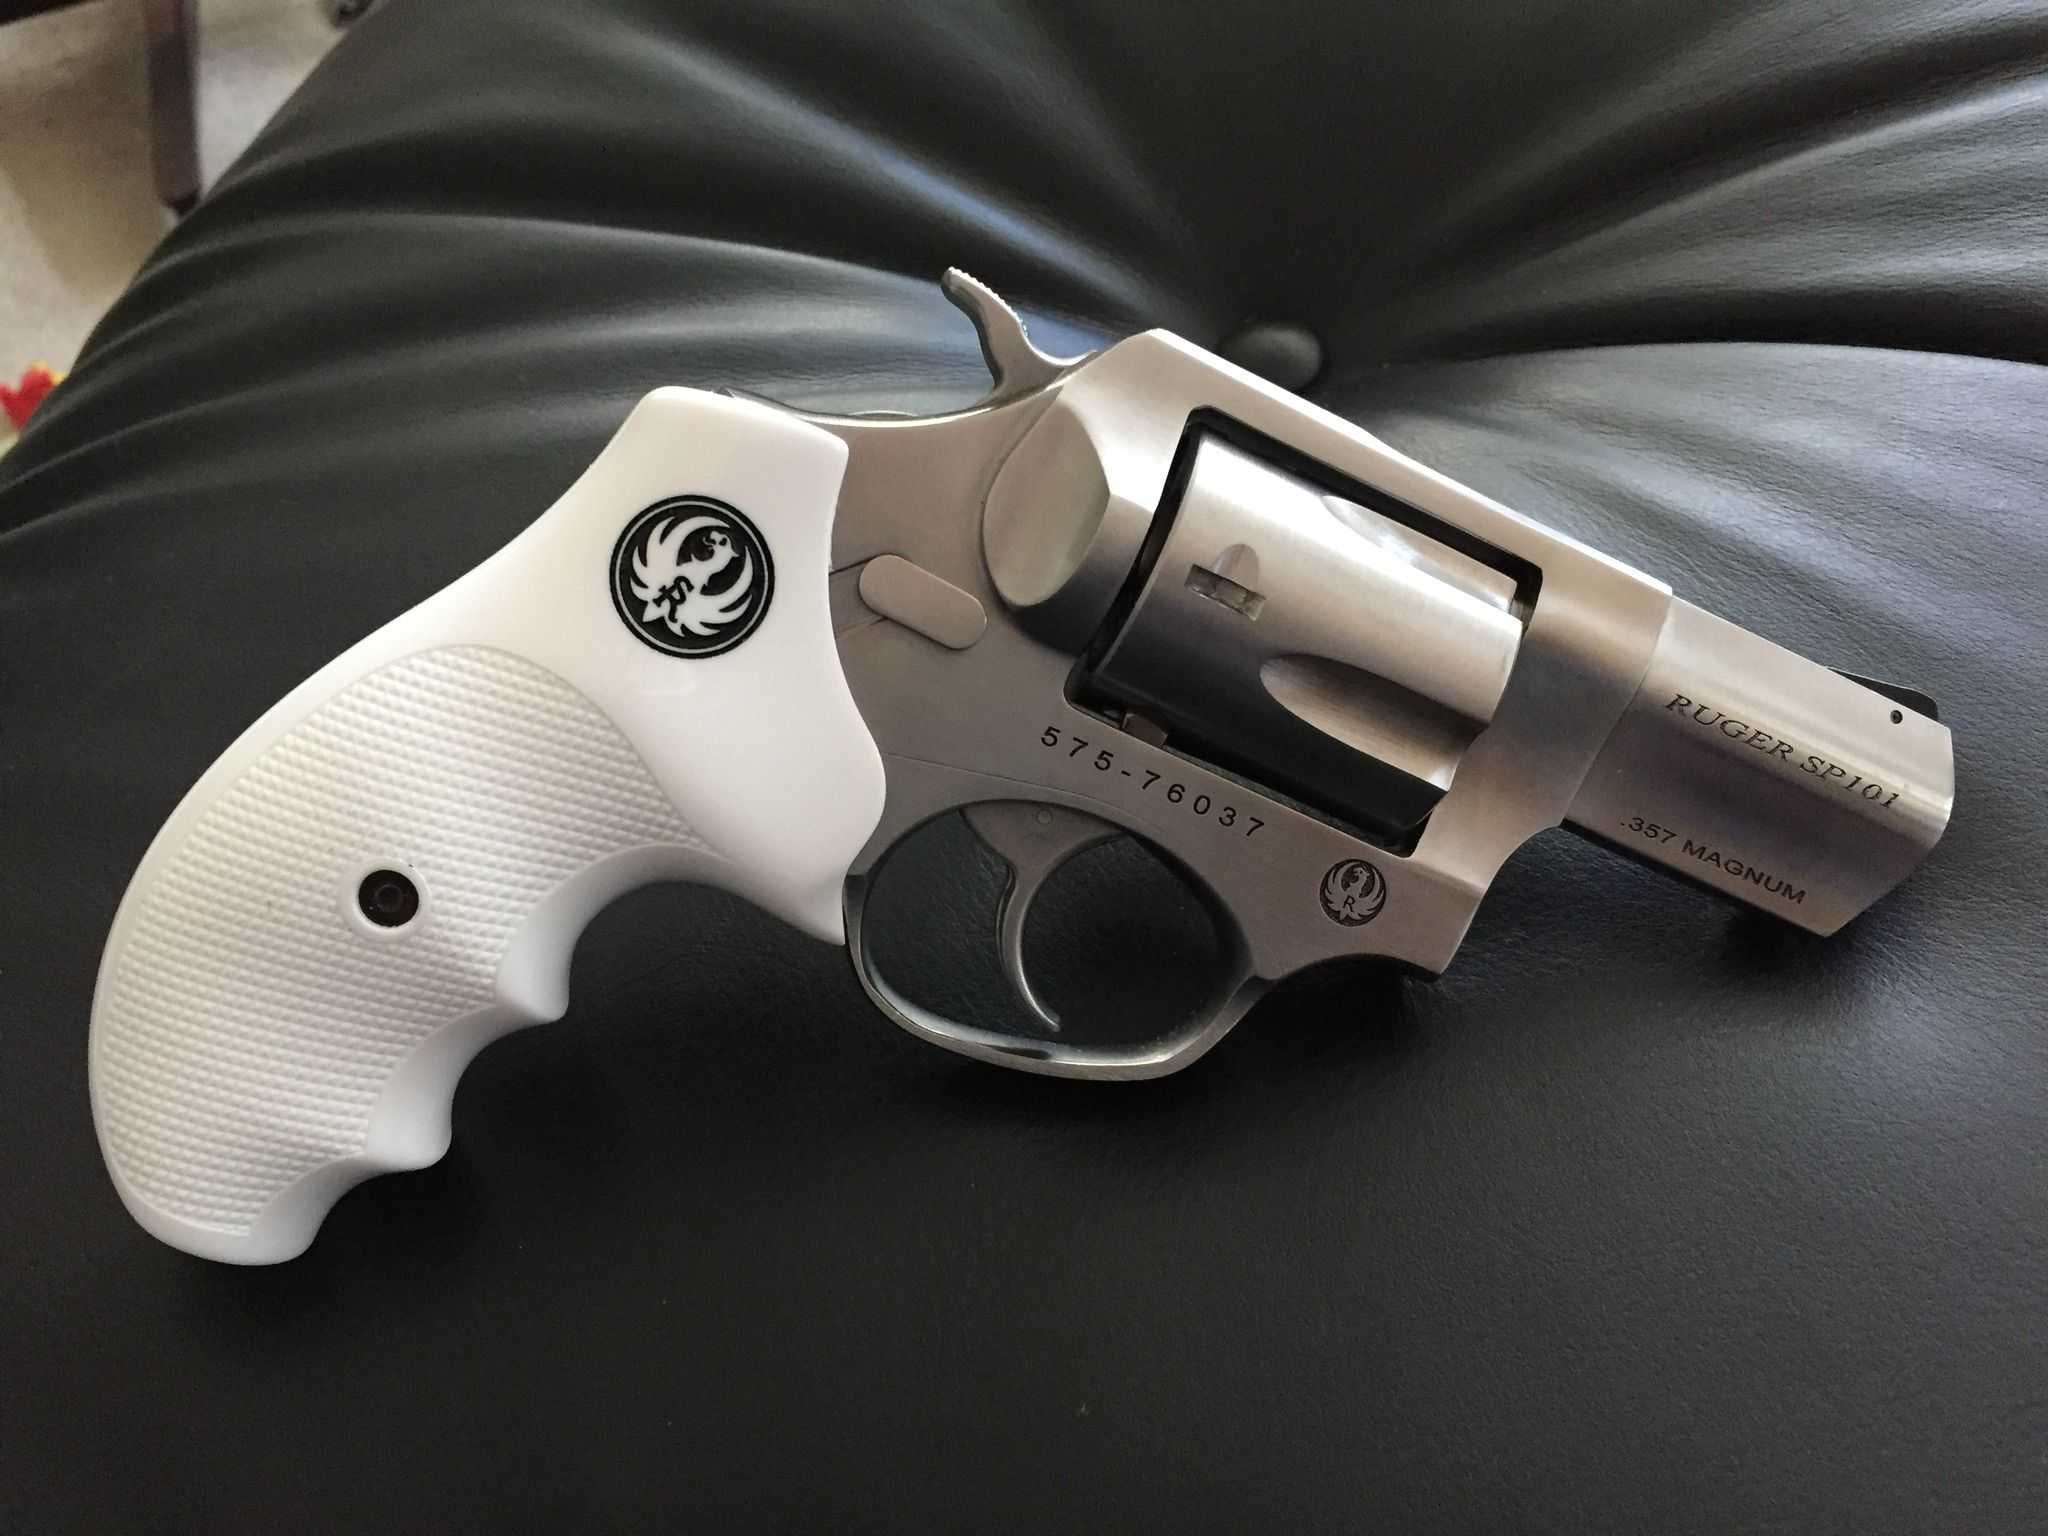 Save those thumbs | Ruger 9mm speed loader | Pinterest ...